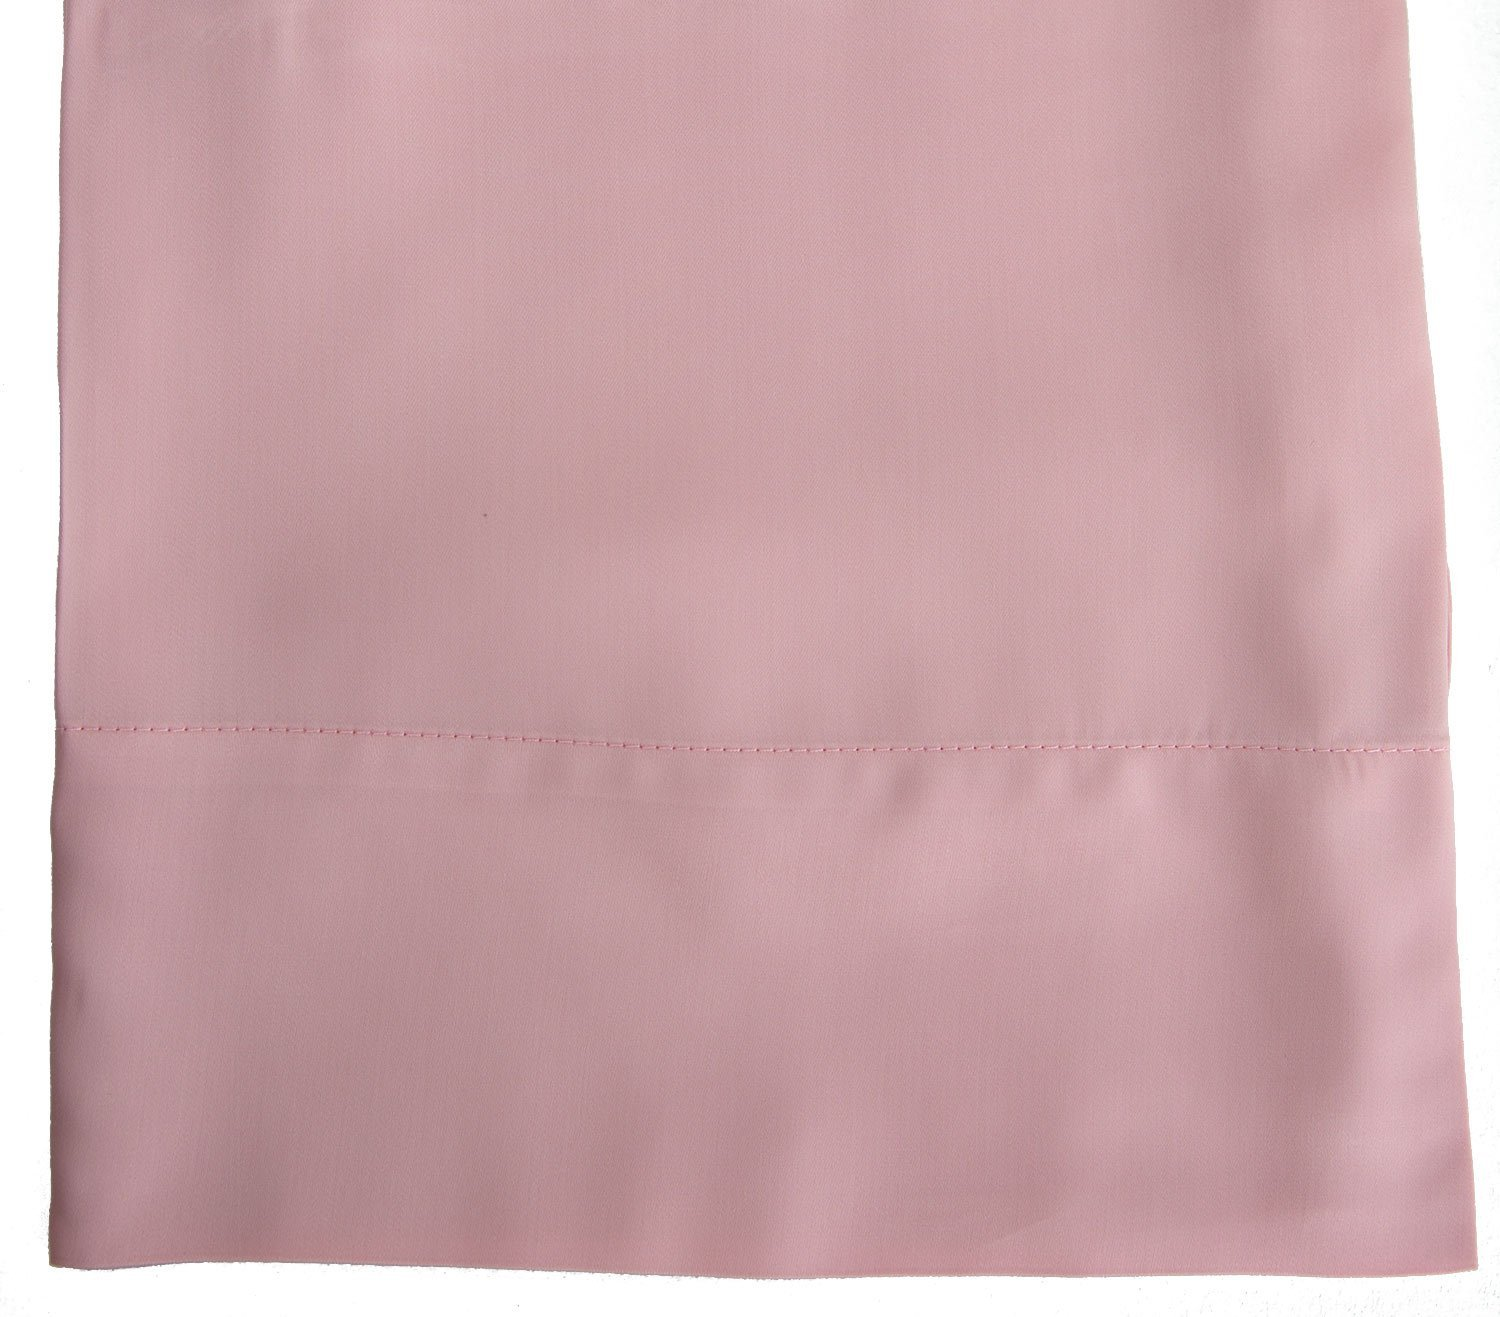 Hotel Sheets Direct 100% Bamboo Pillowcase Set 20 x 30 inch (2 Pillowcases, Rose Pink)